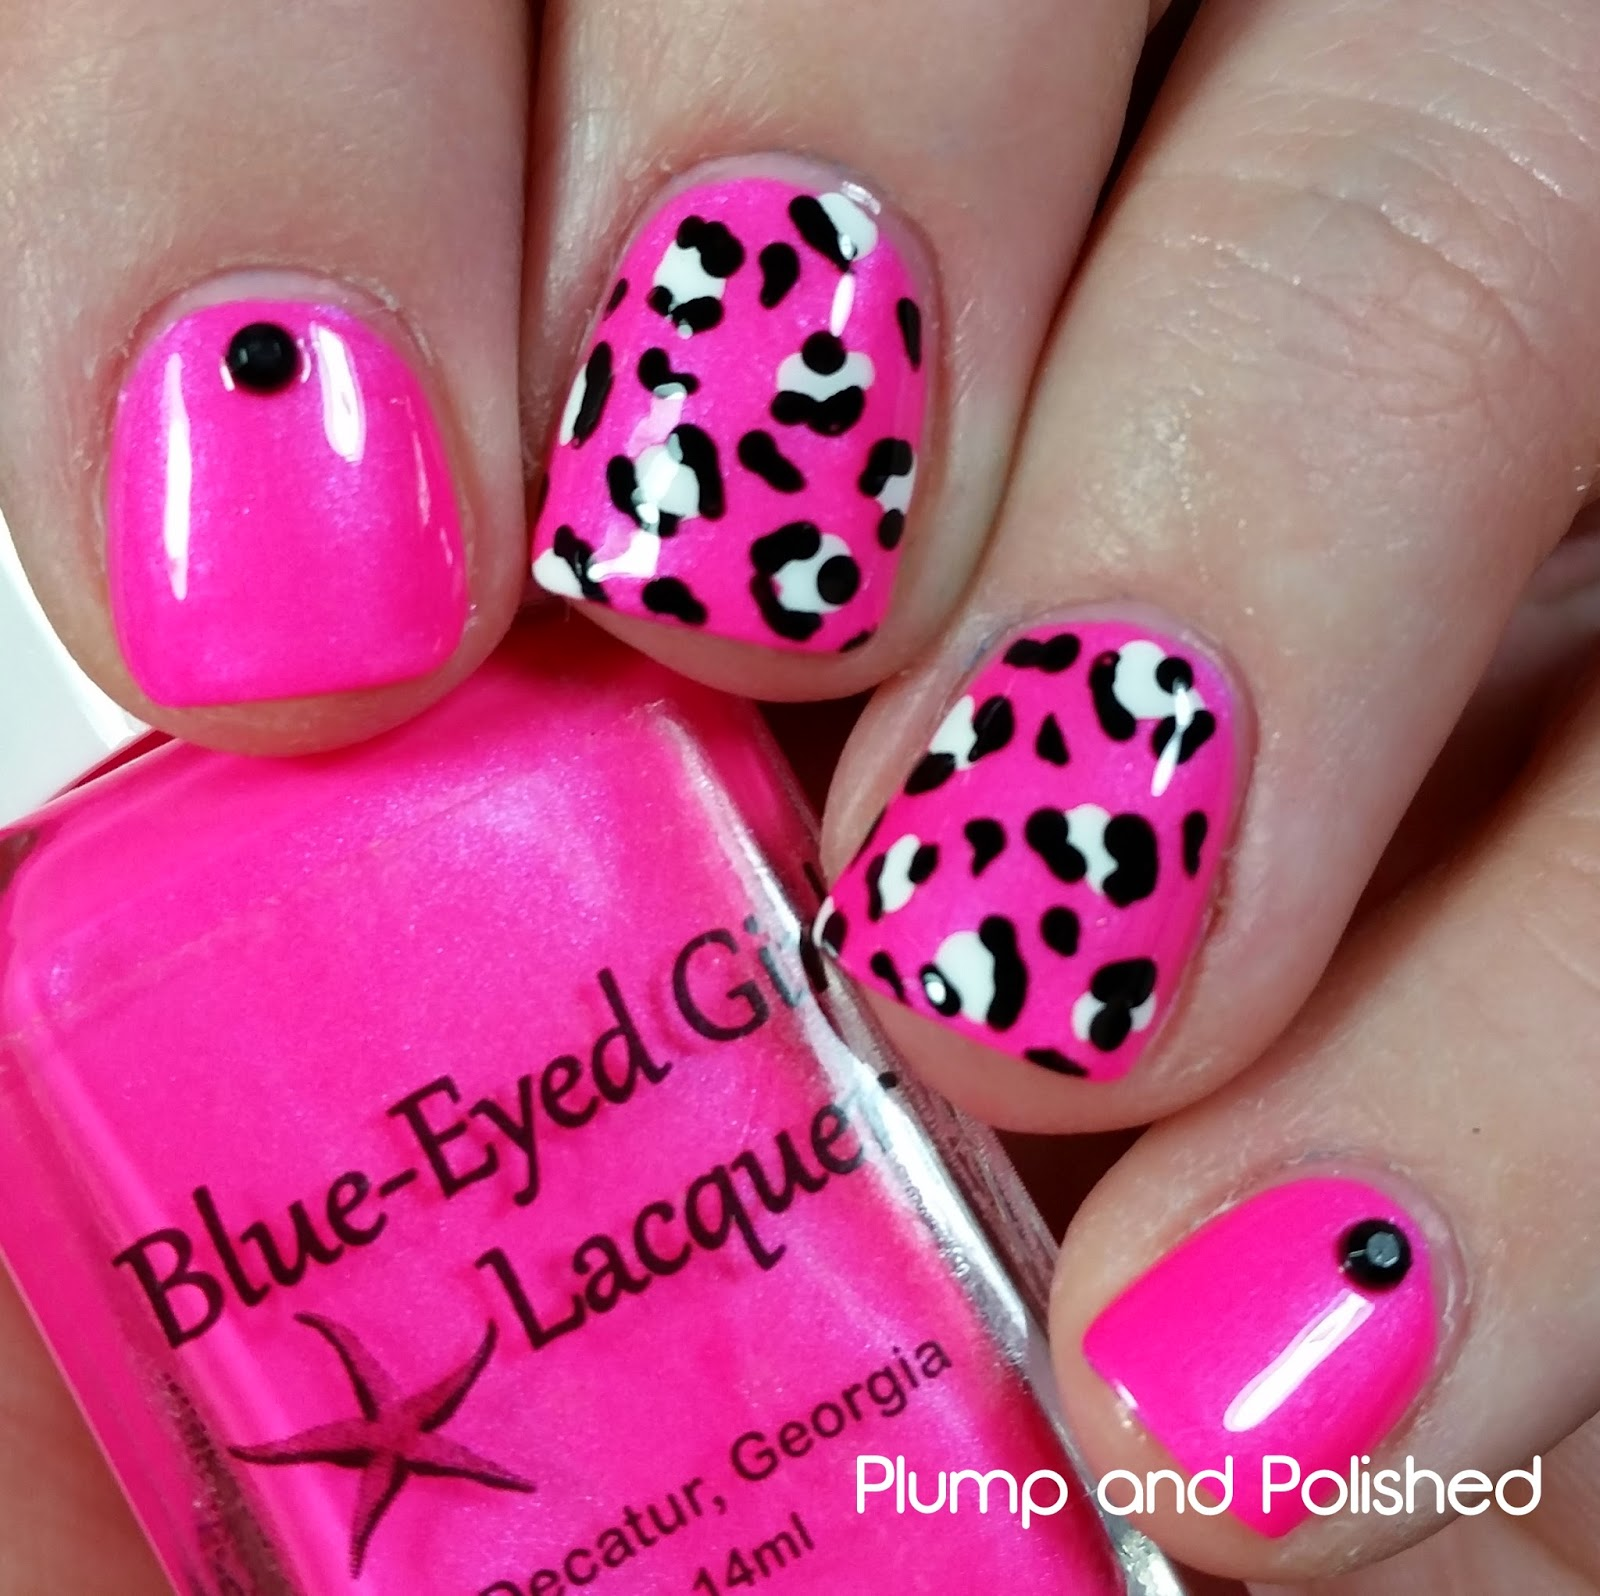 Blue-Eyed Girl Lacquer - Sirène Fatale Leopard Print Nail Art